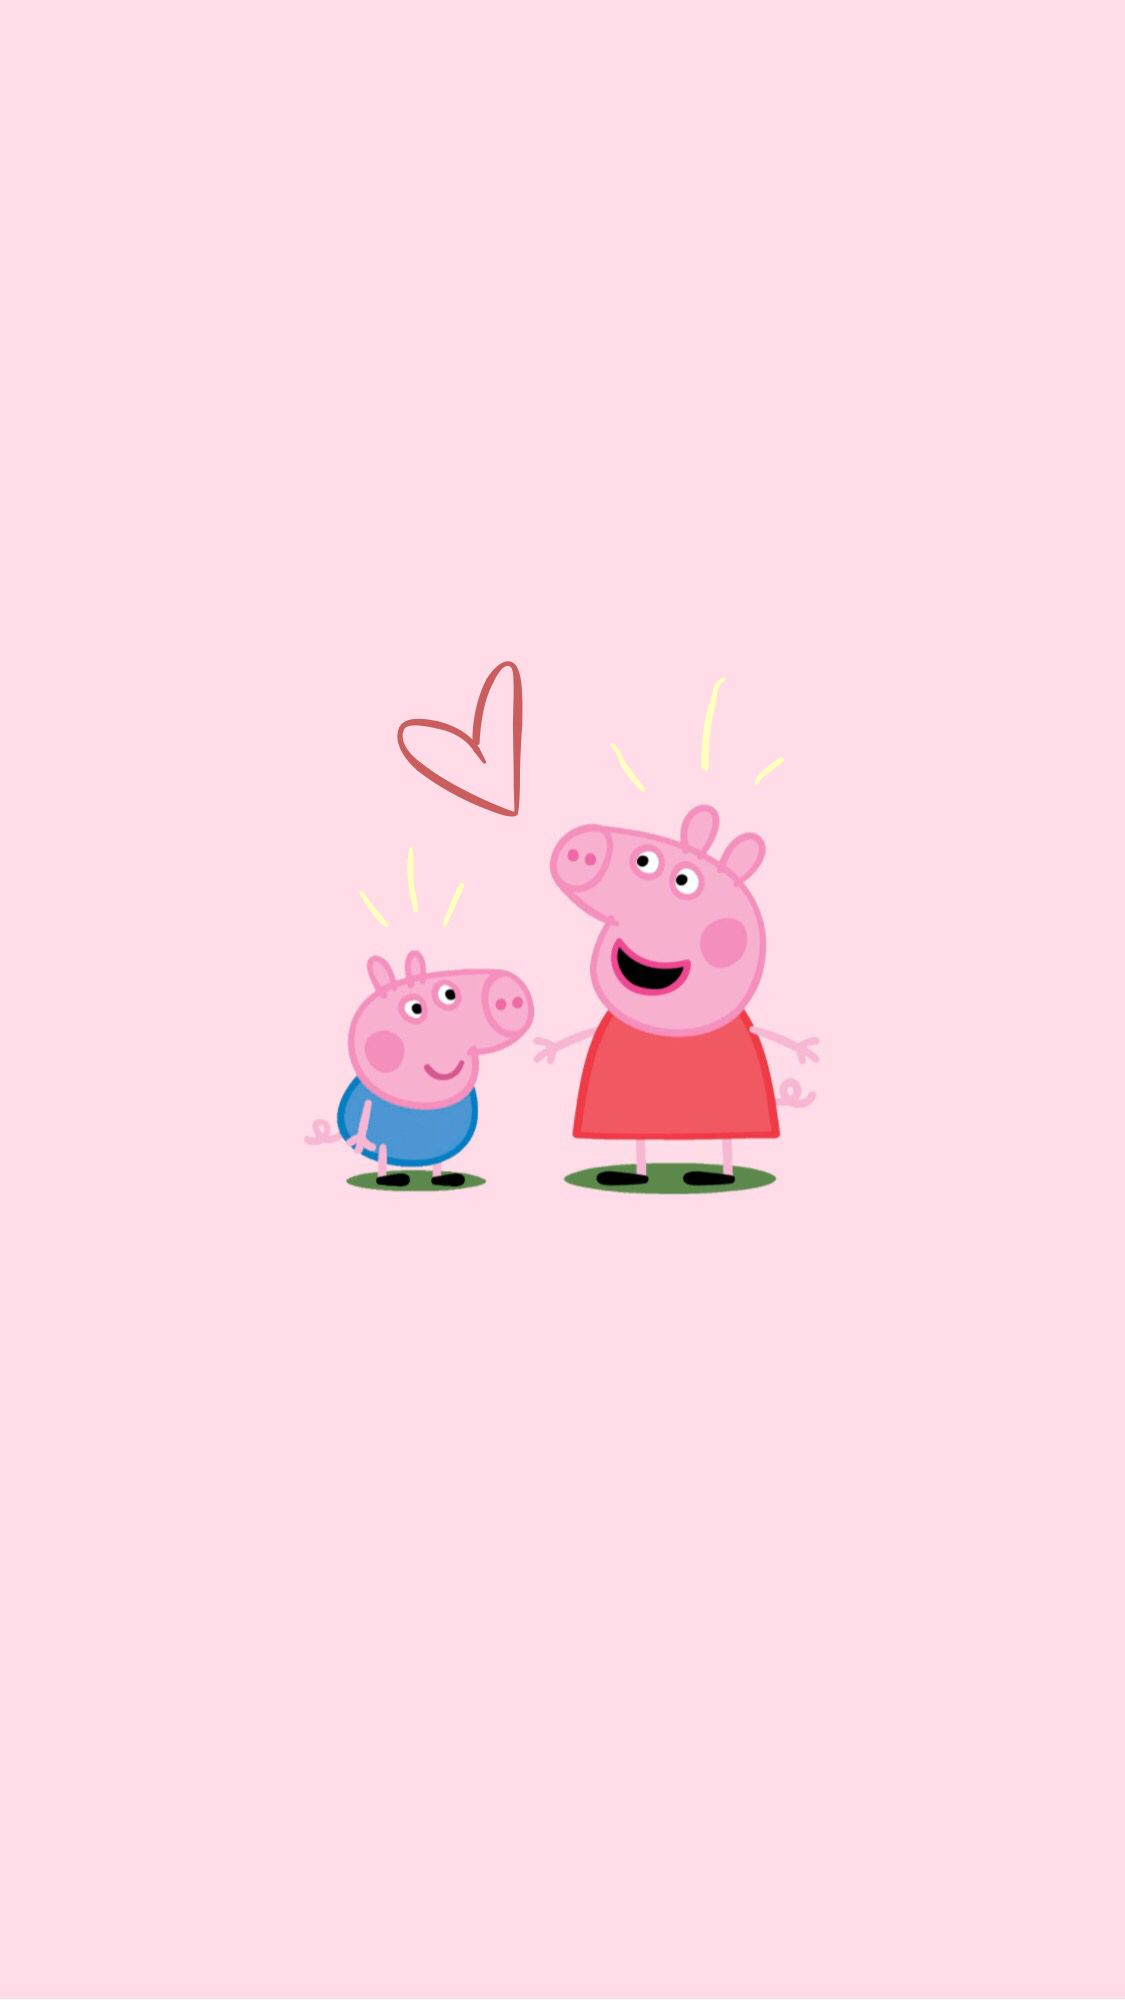 peppa pig wallpaper! Cartoon wallpaper iphone, Peppa pig